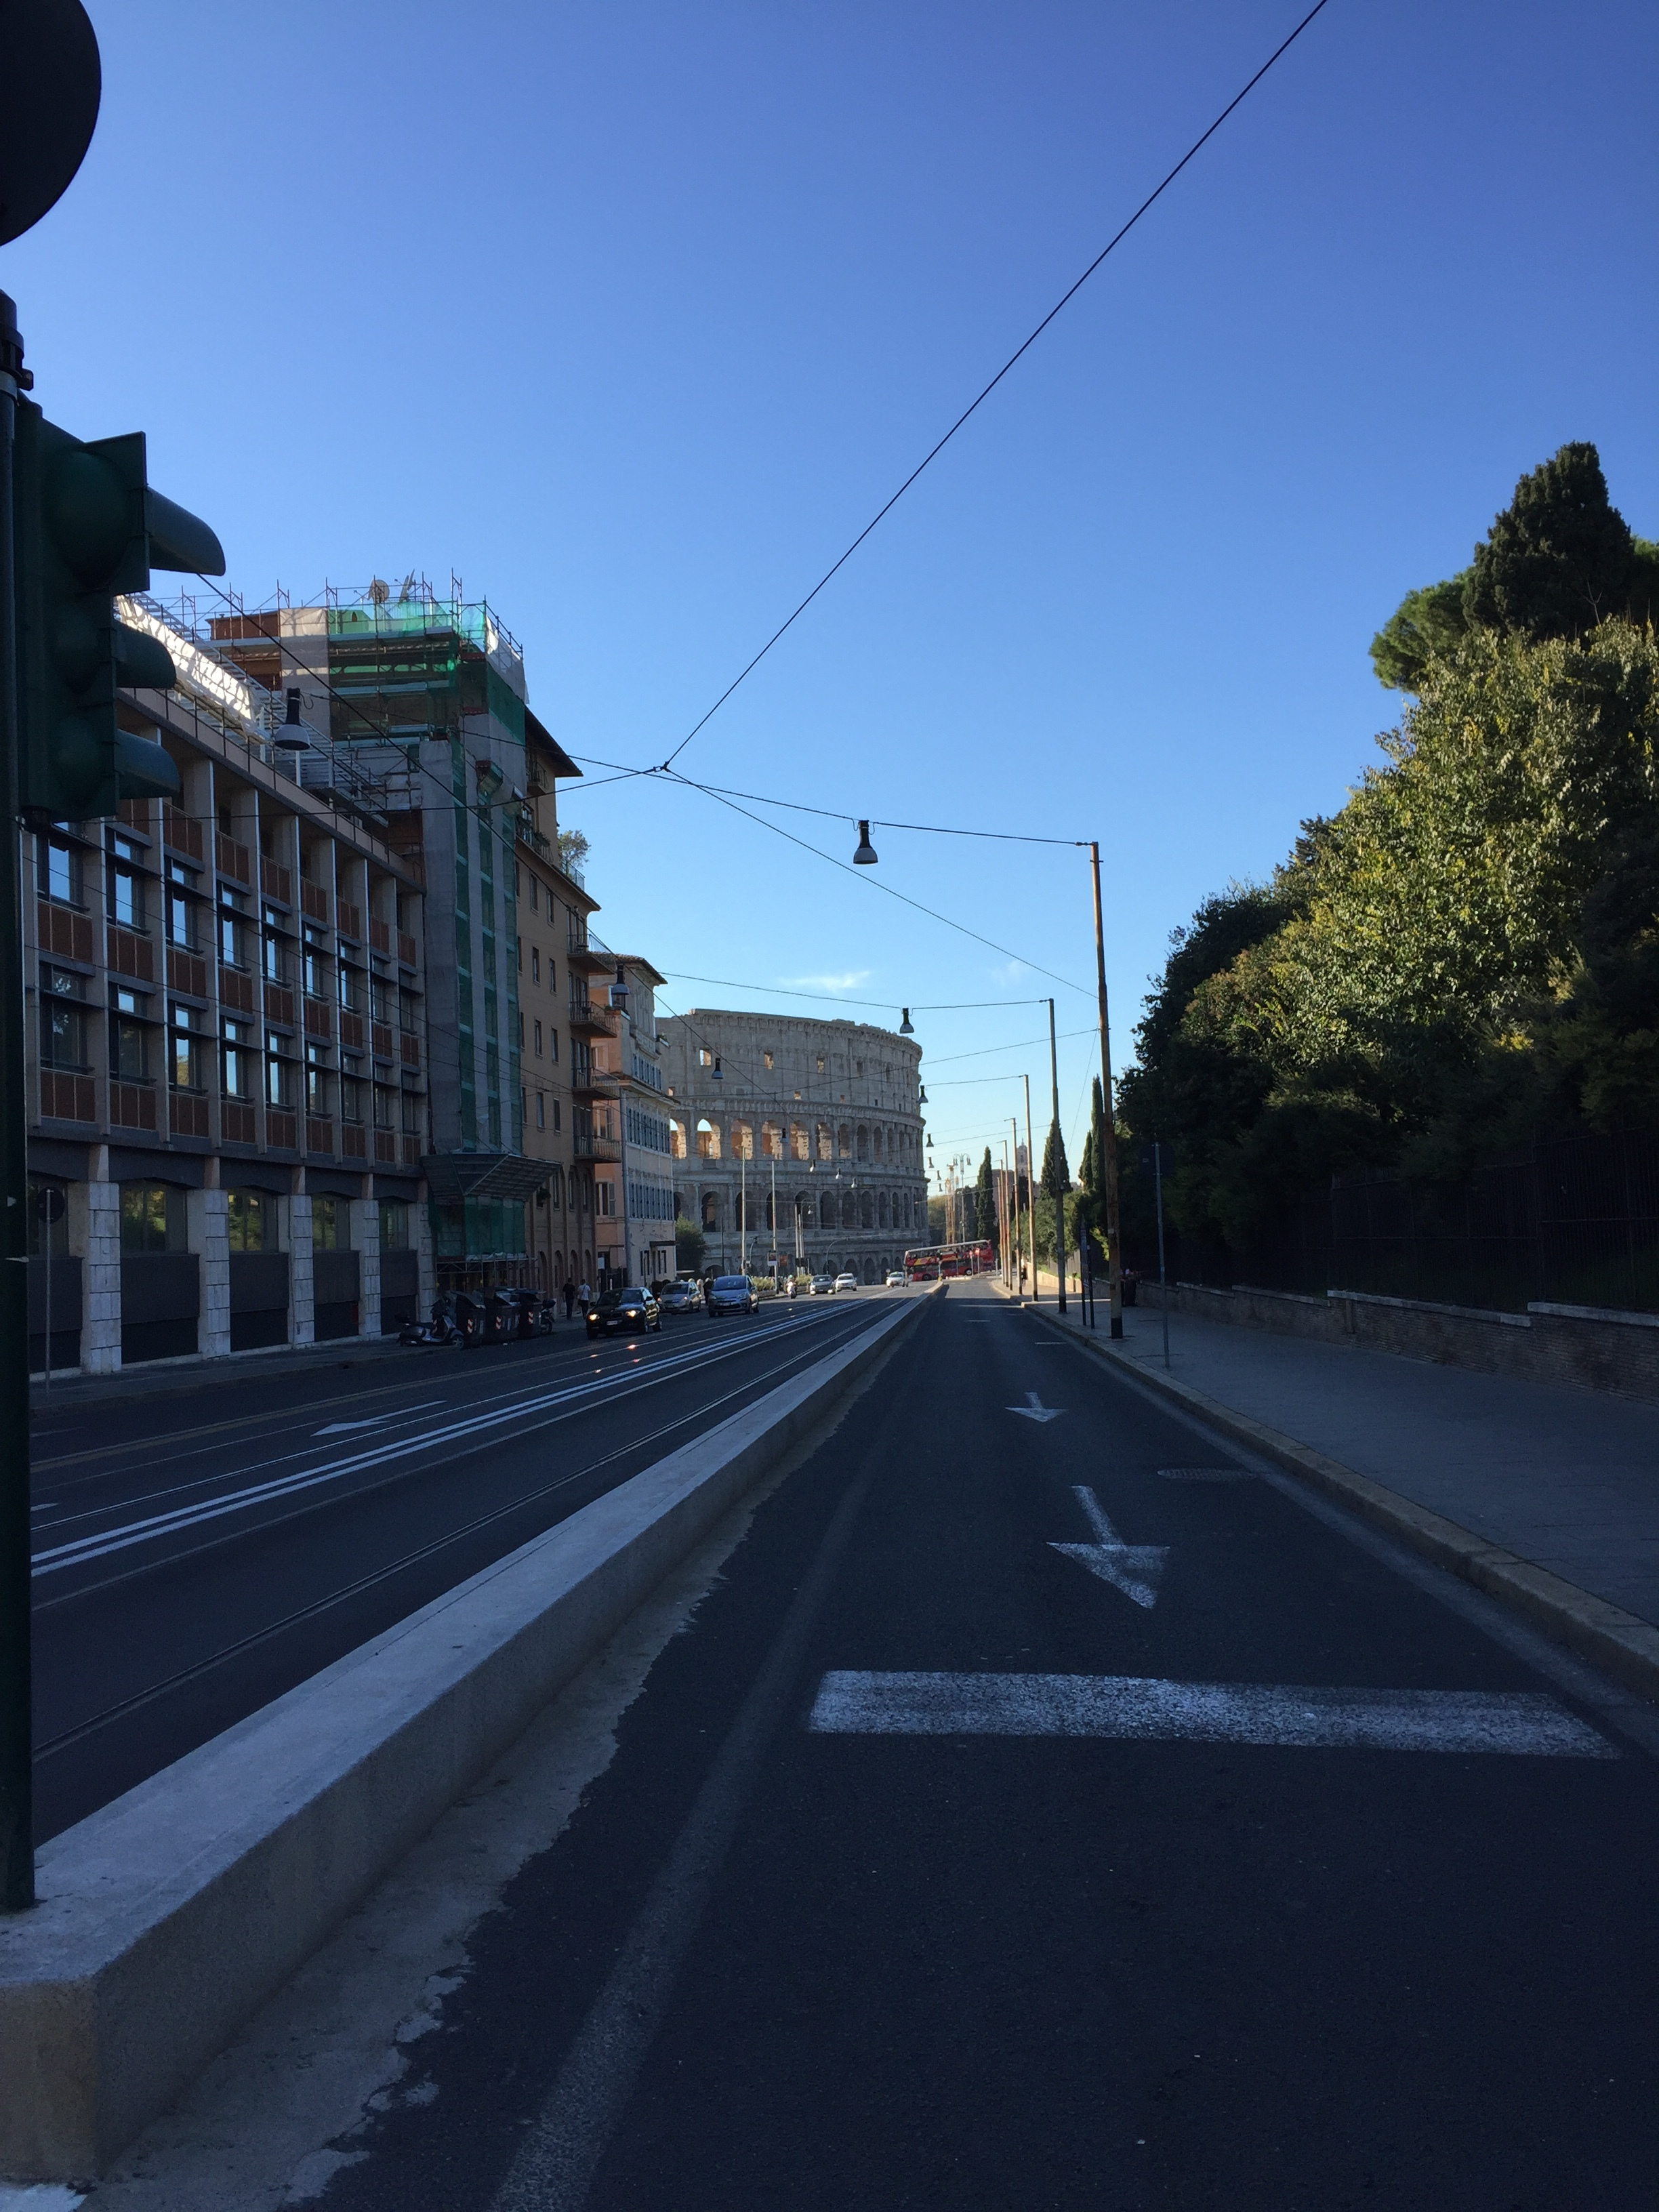 The coliseum in Rome was SO close to our Rome Airbnb -- it made catching public transportation very easy!